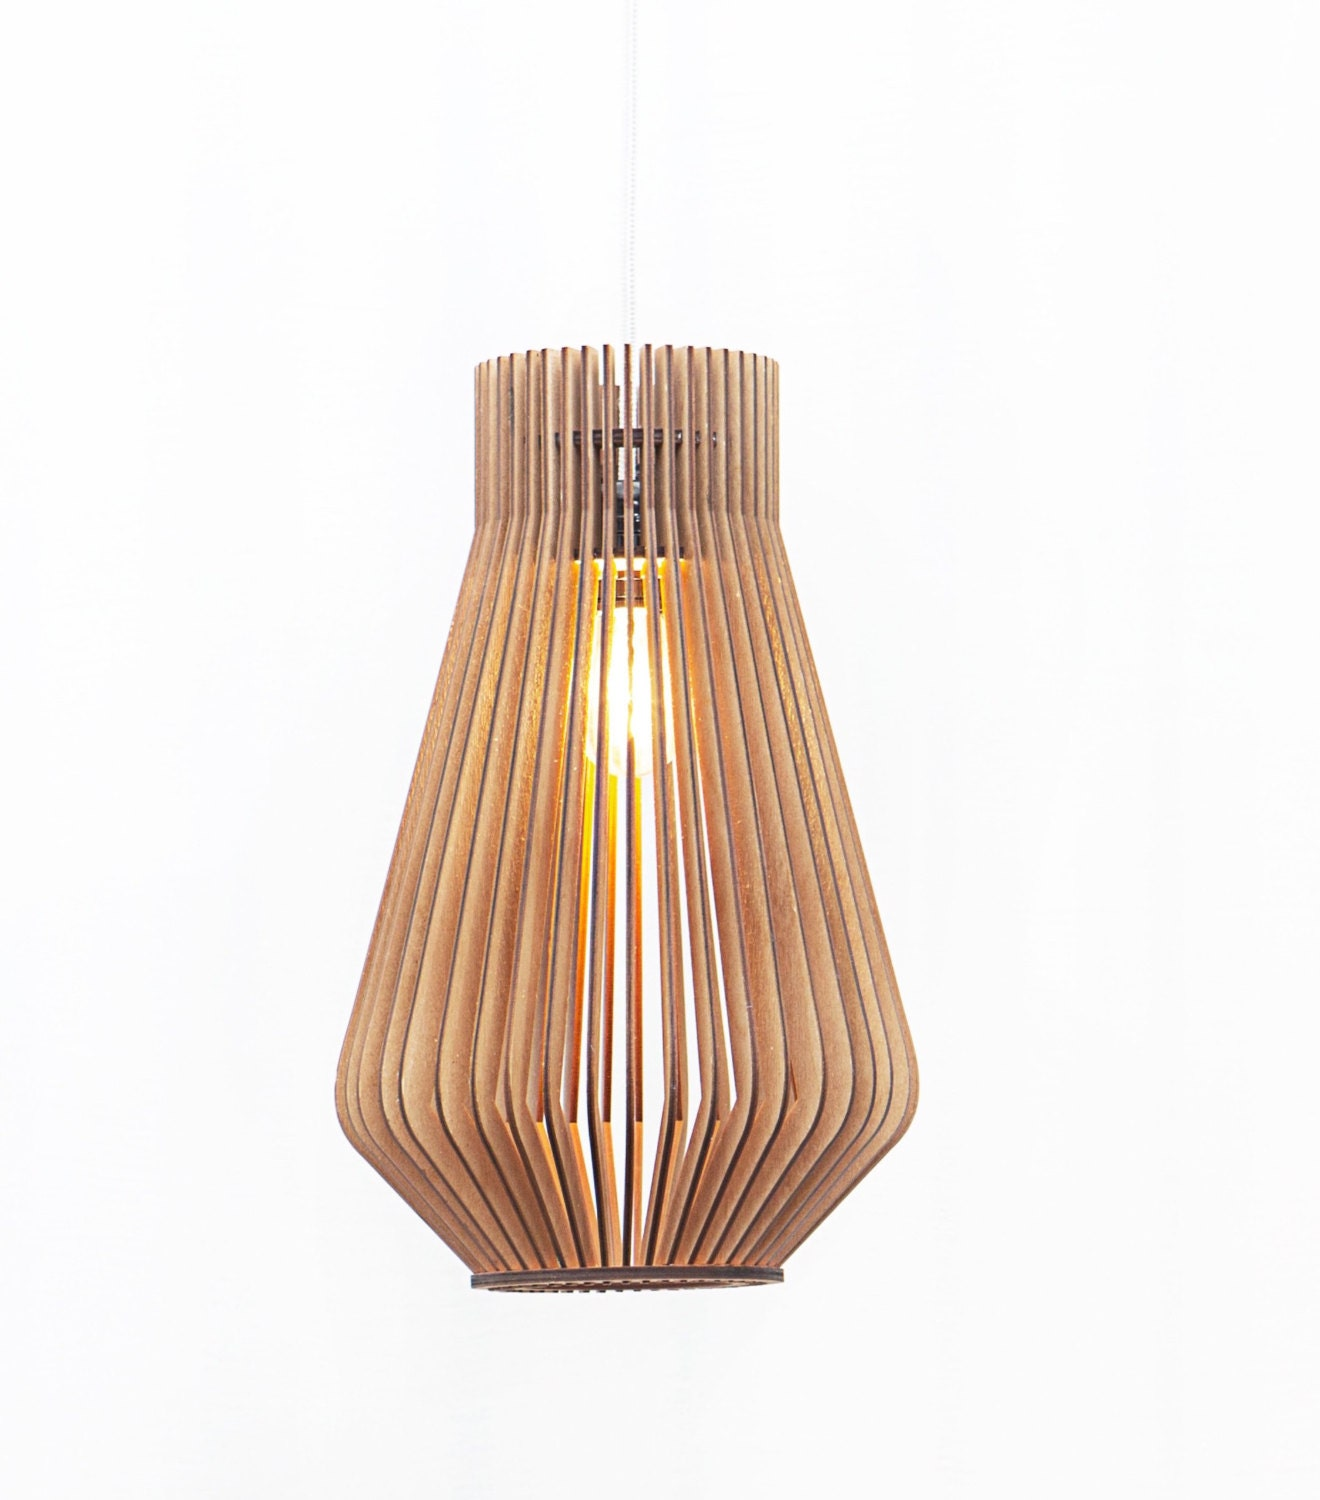 Hanging Lamp Design: Scandinavian Style Wooden Hanging Lamp / Lighting / Design